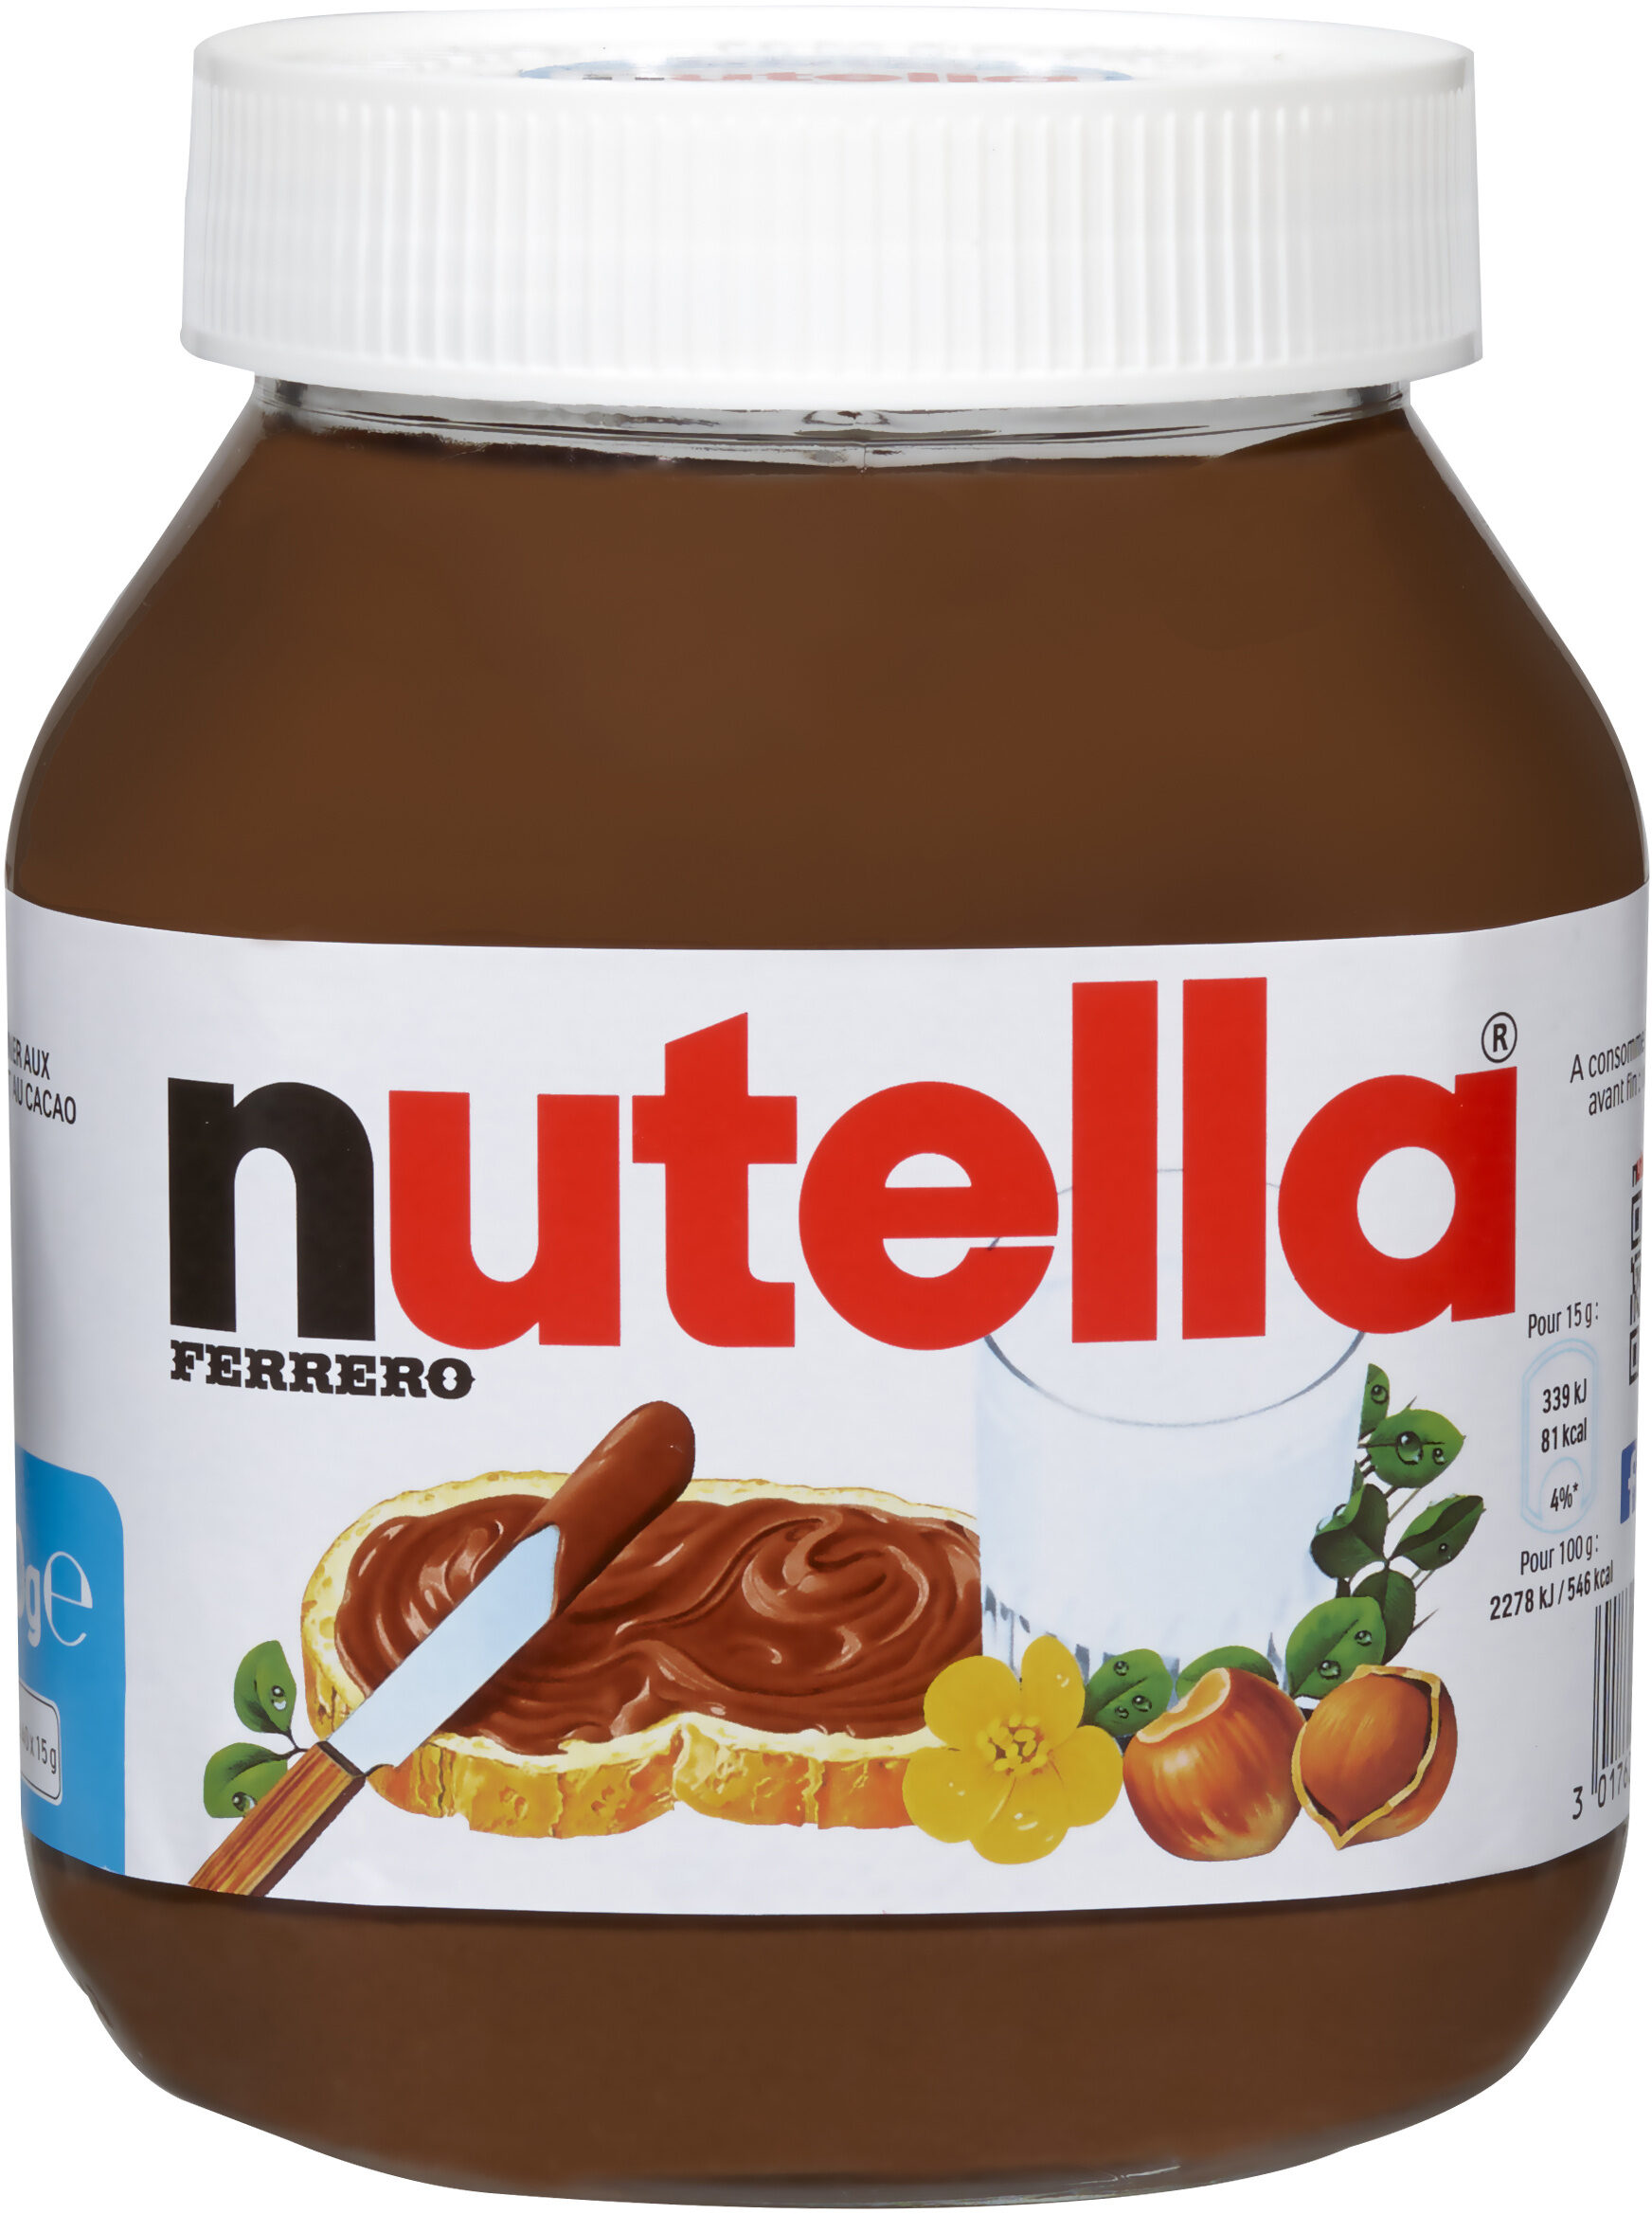 Nutella pate a tartiner noisettes-cacao t.600 pot de - Product - fr